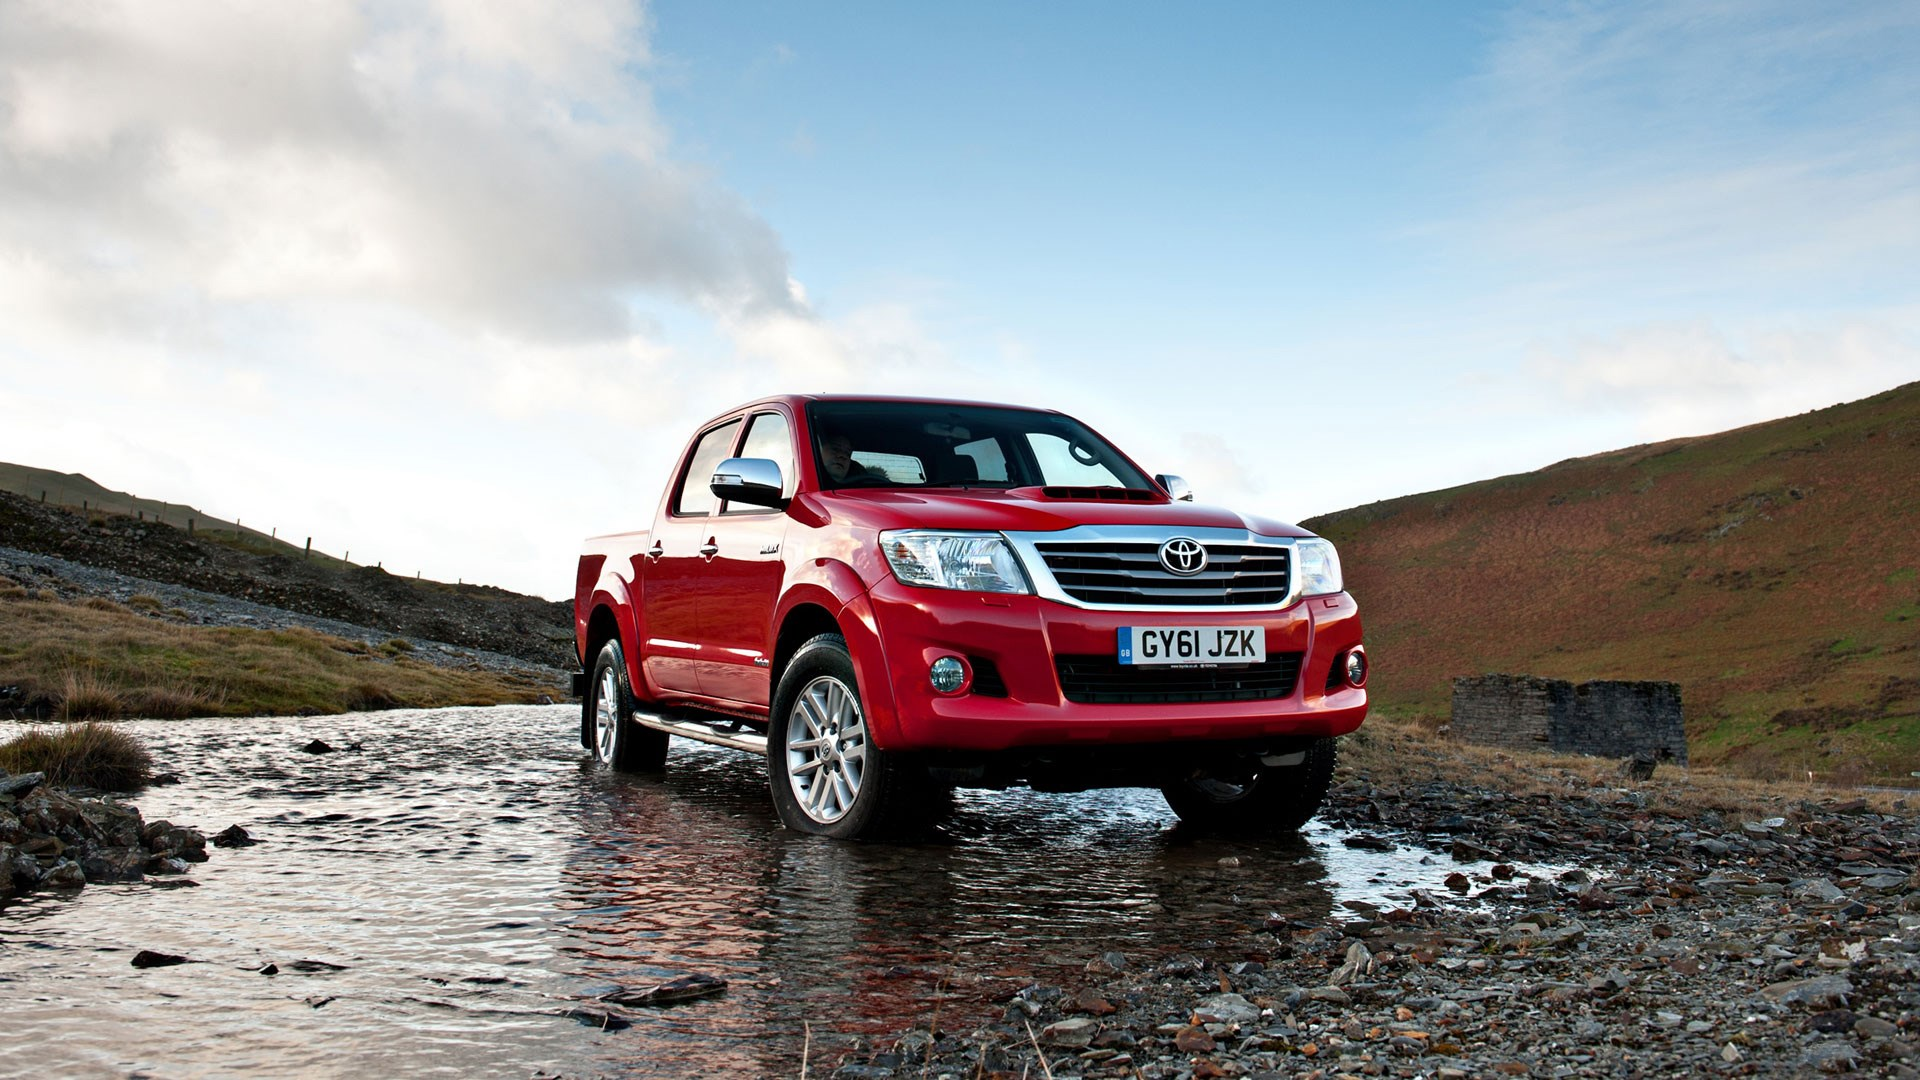 Toyota Hilux Wallpapers and Background Images   stmednet 1920x1080